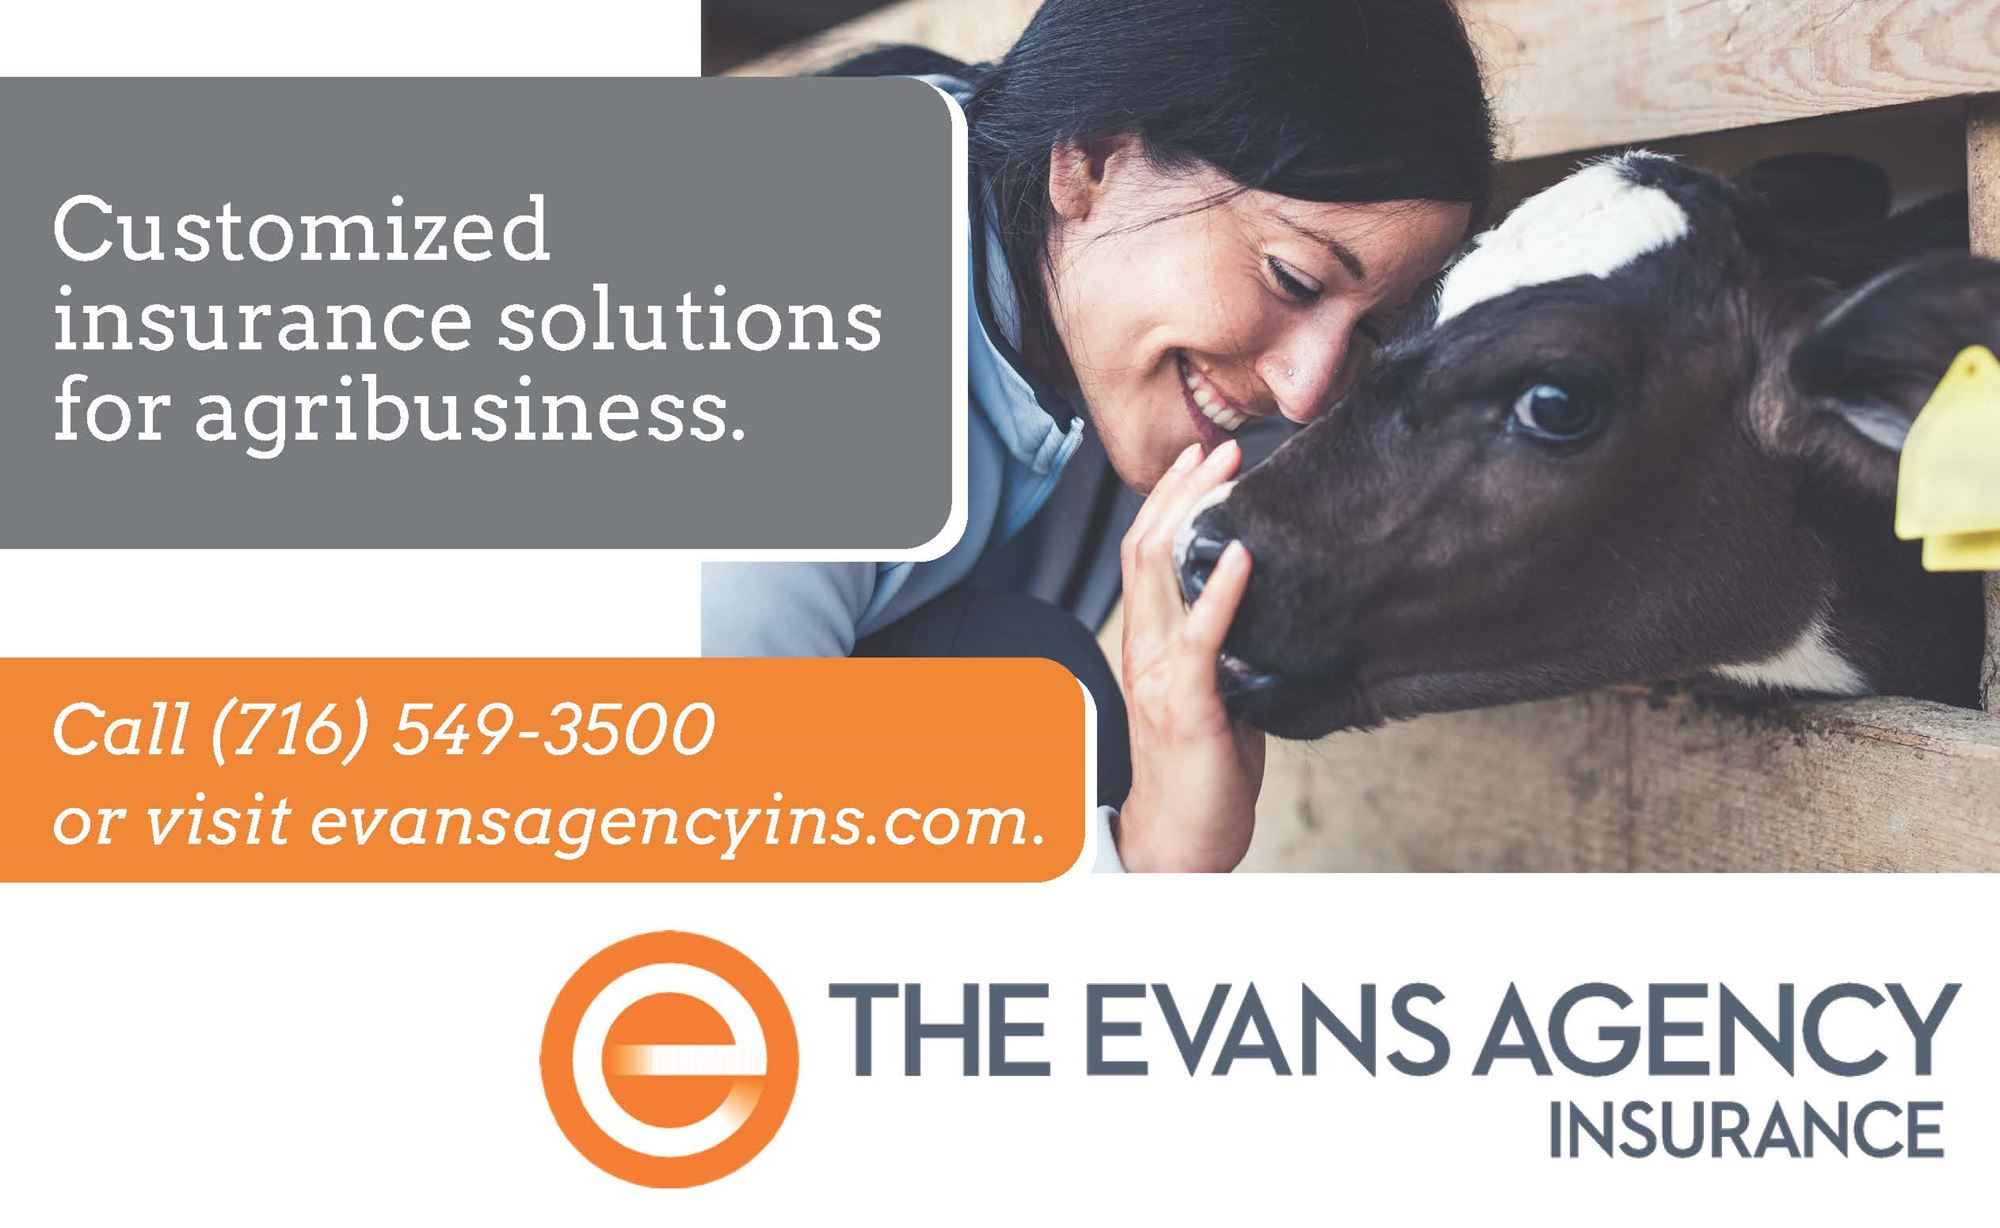 The Evans Agency